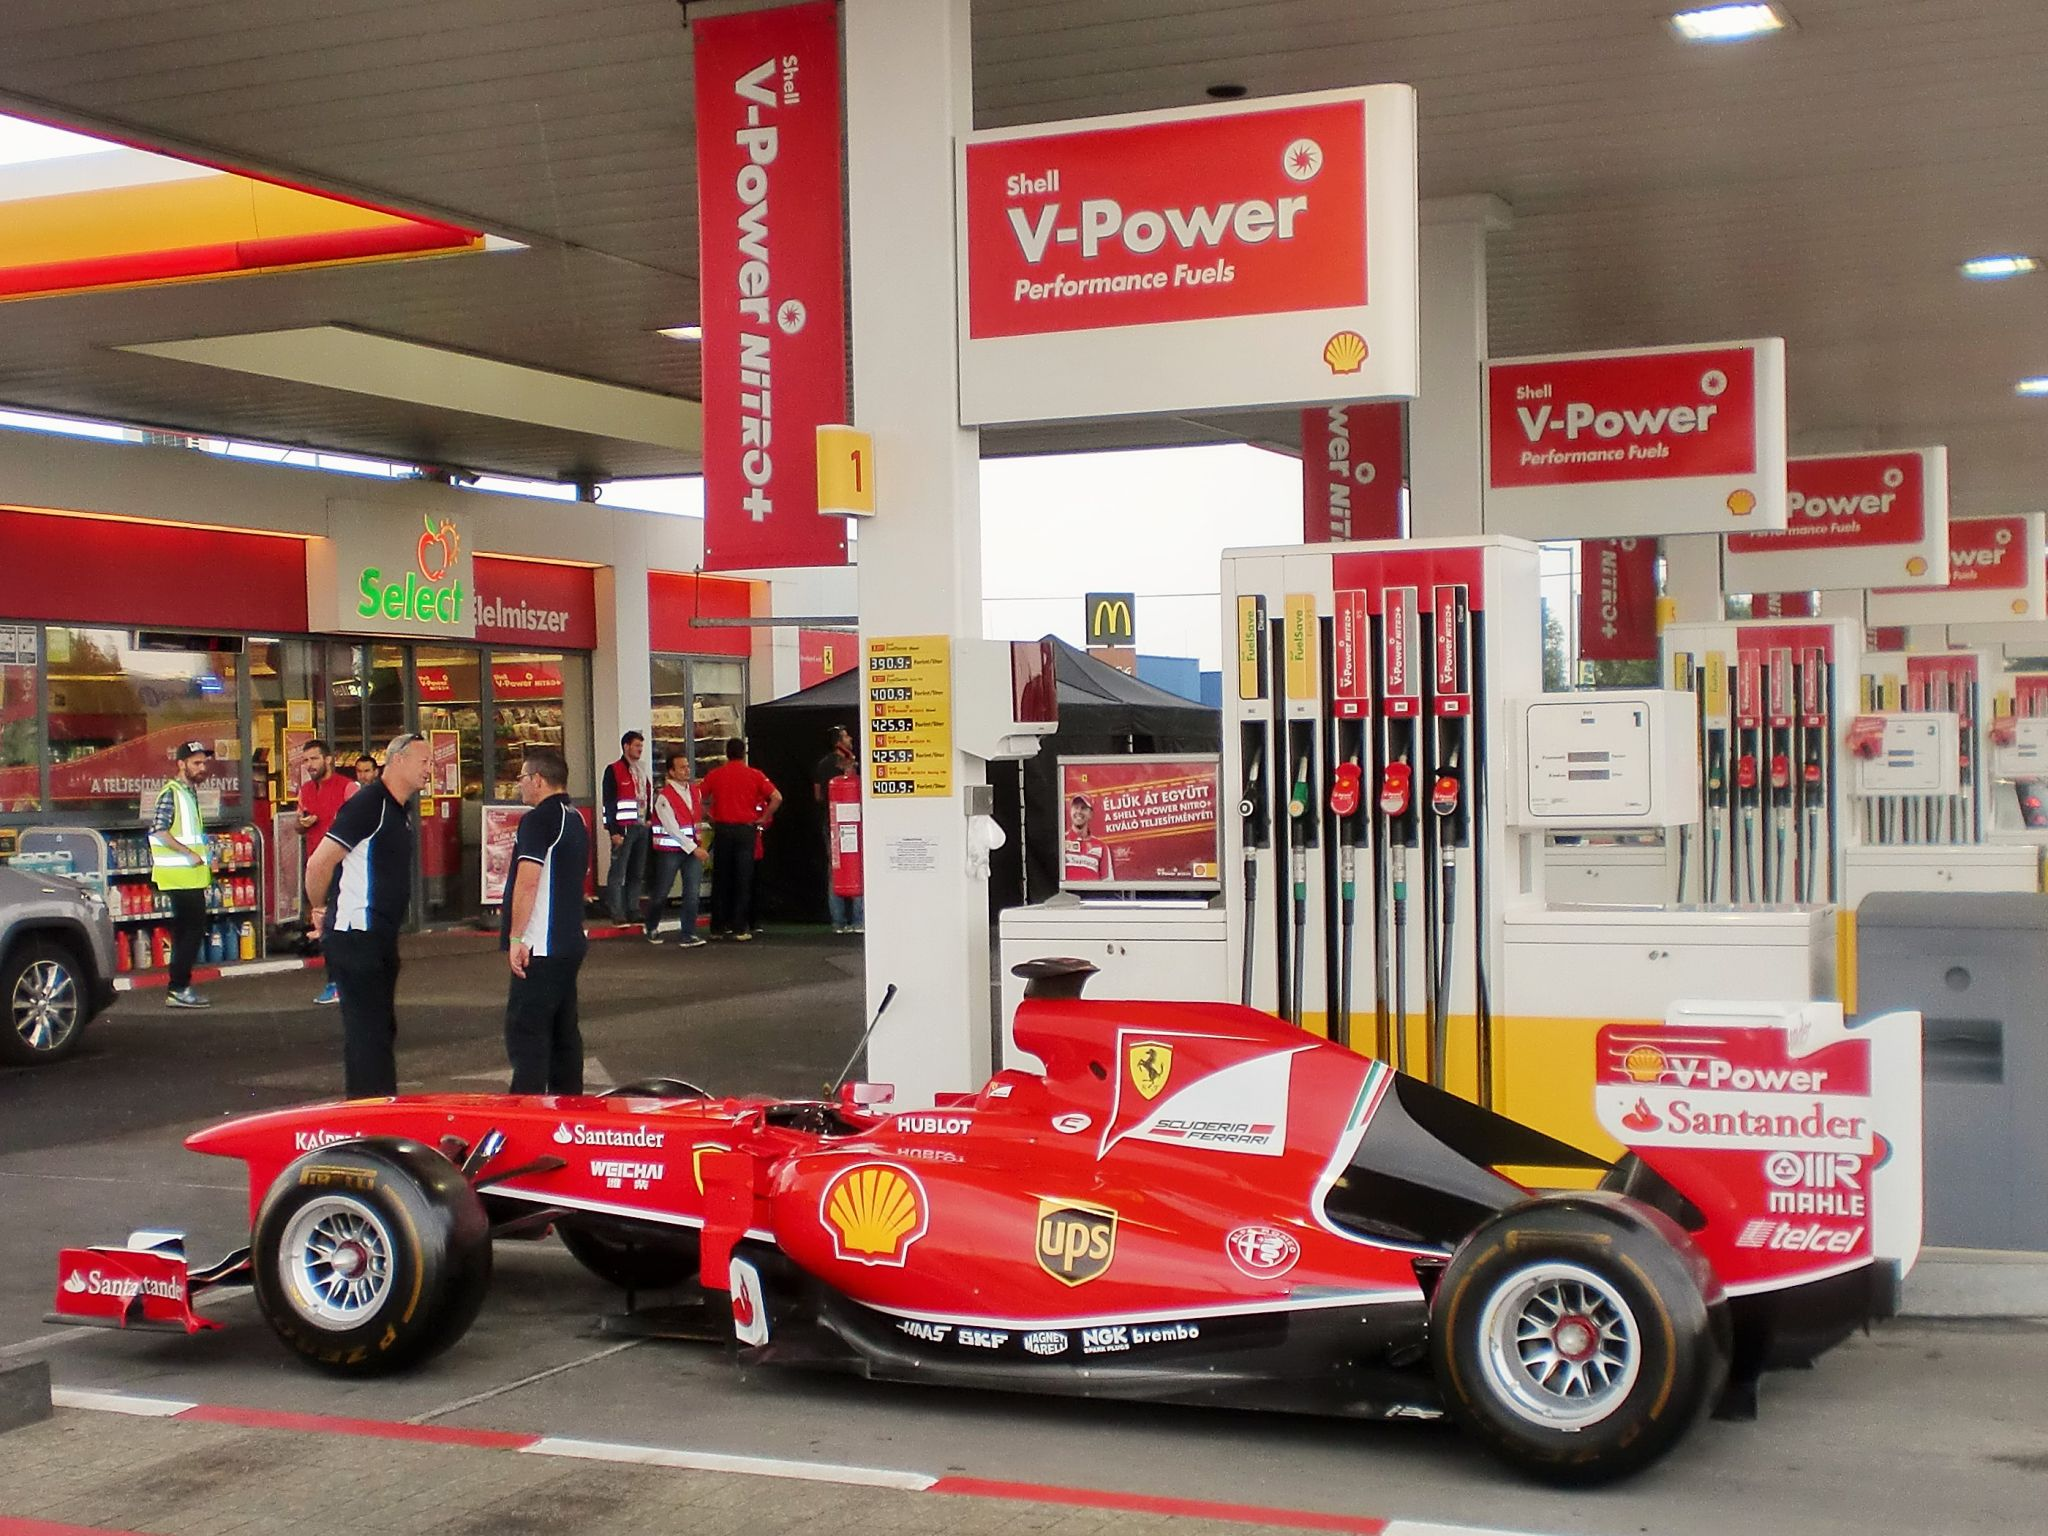 Shell V Power >> Shell V-Power: Just another day at a Shell station with Sebastian Vettel - Global Logistics ...